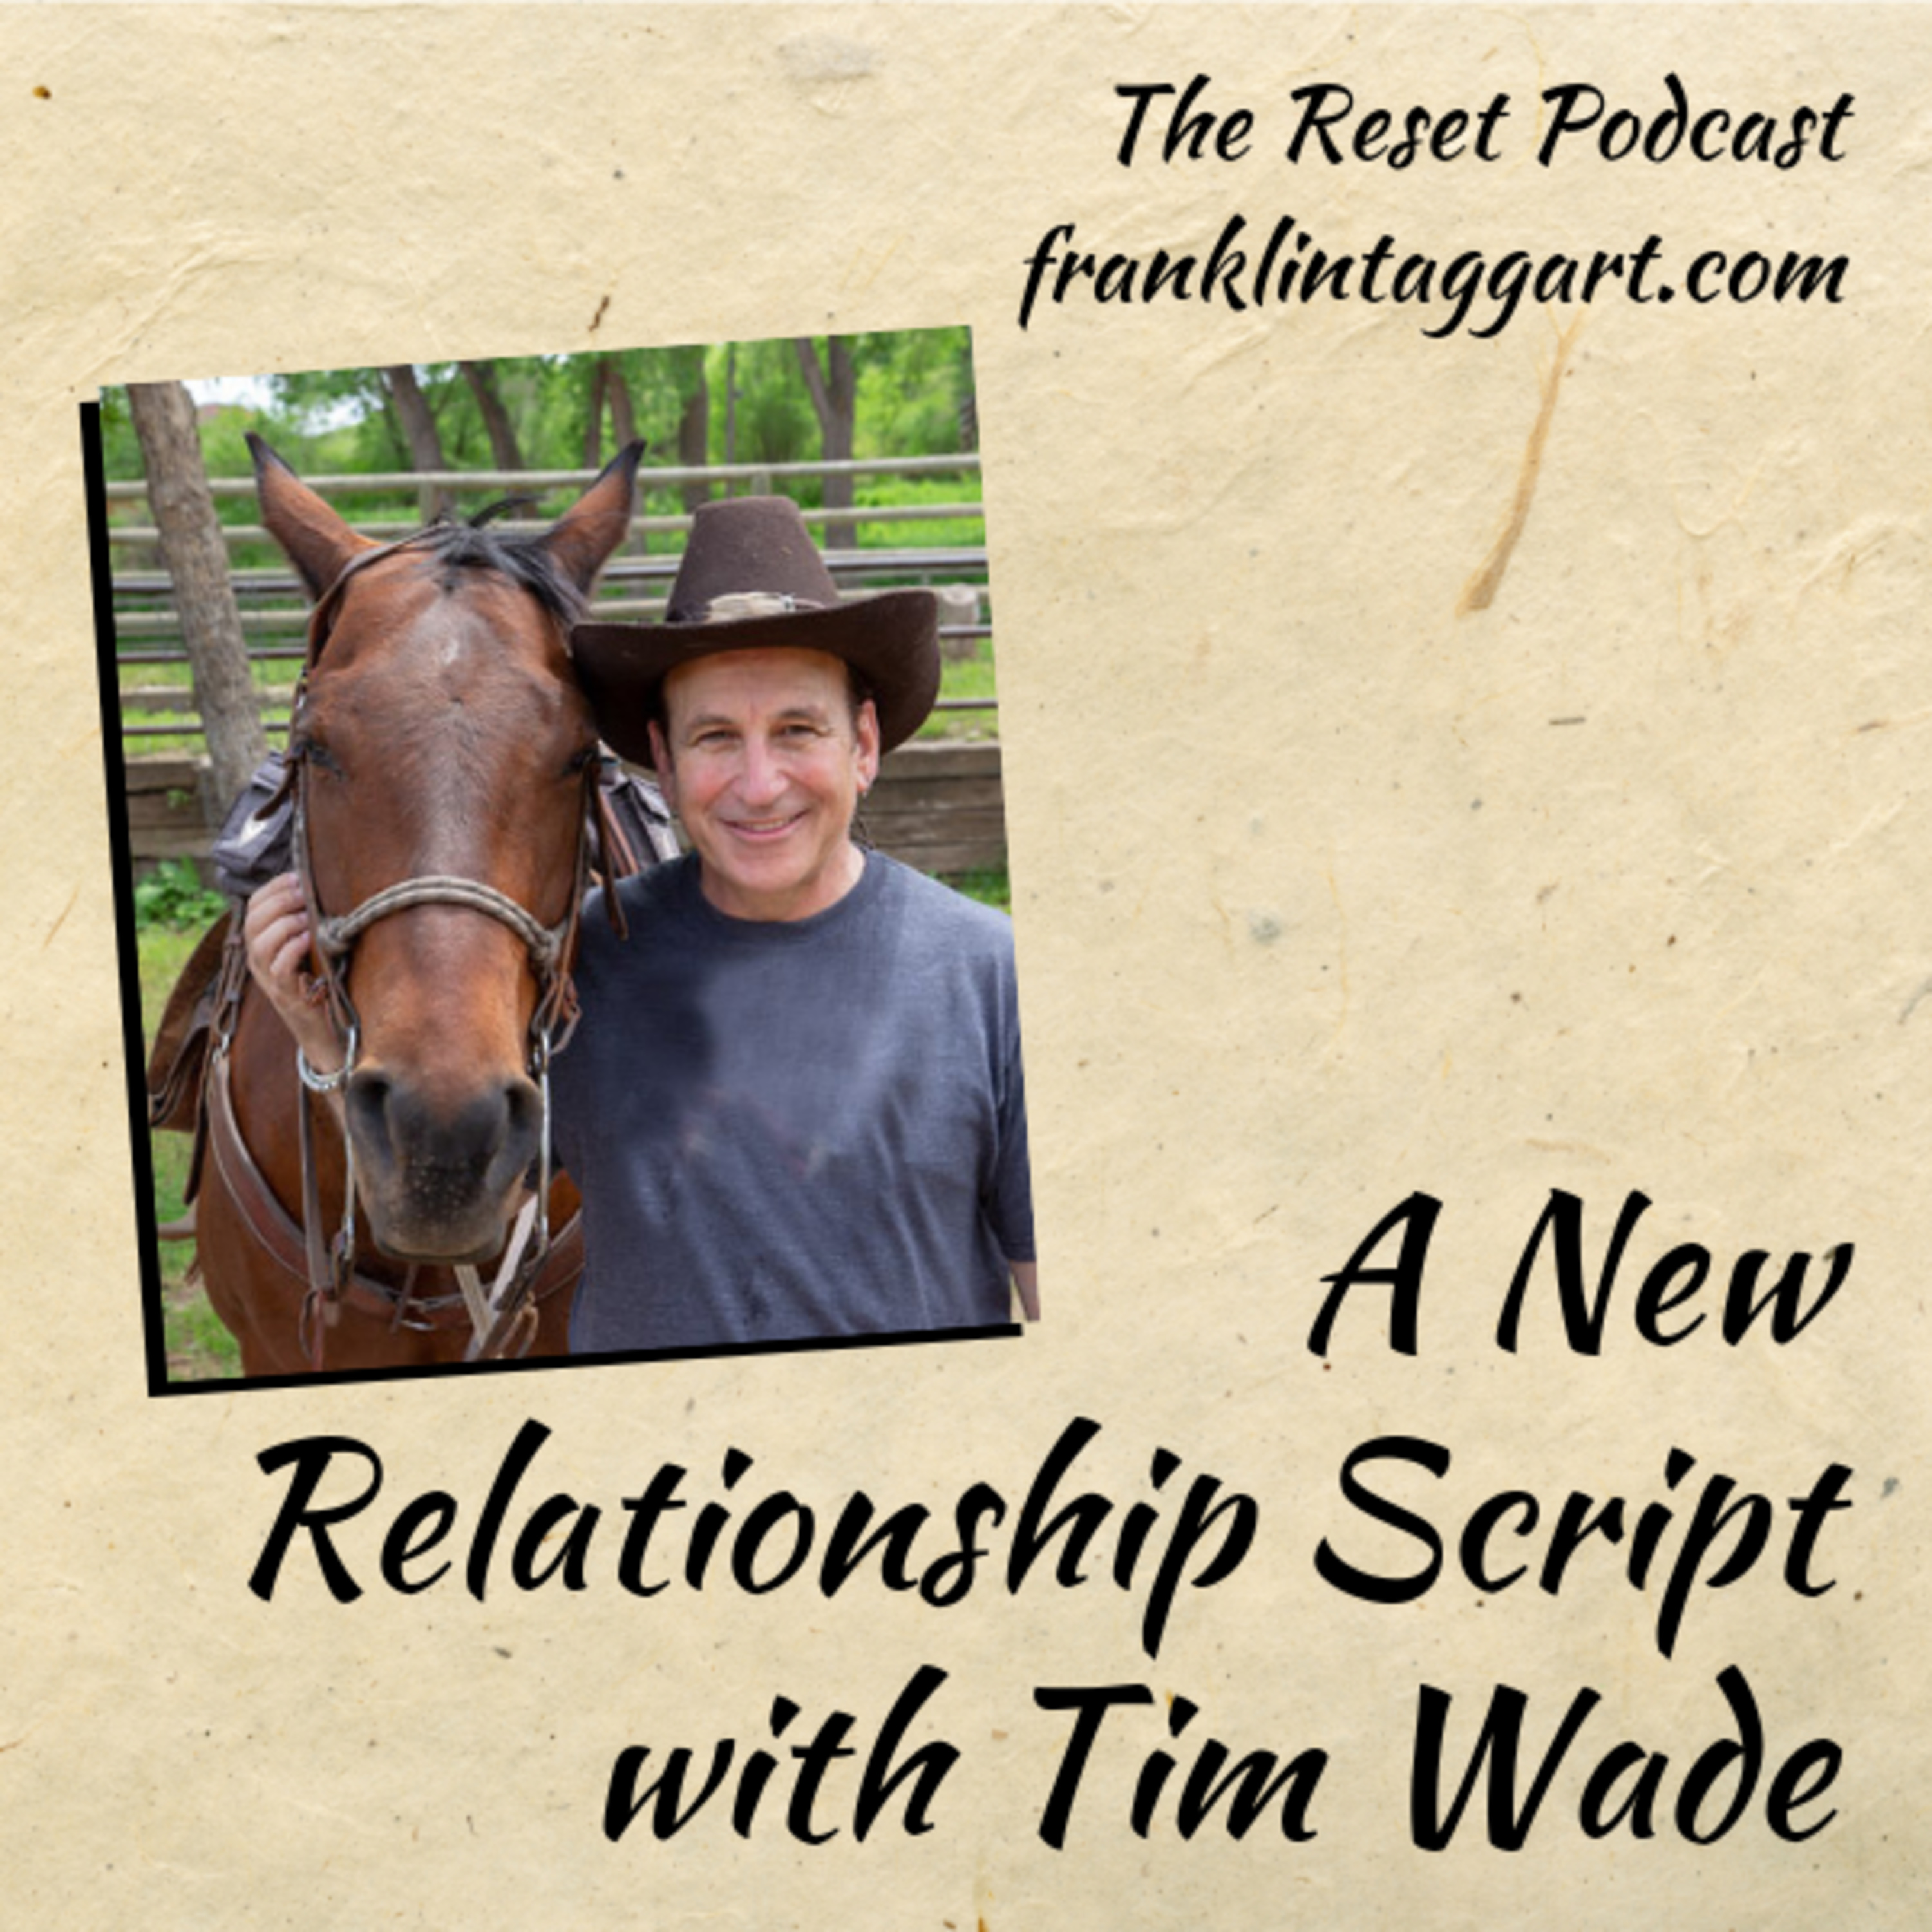 A New Relationship Script with Tim Wade